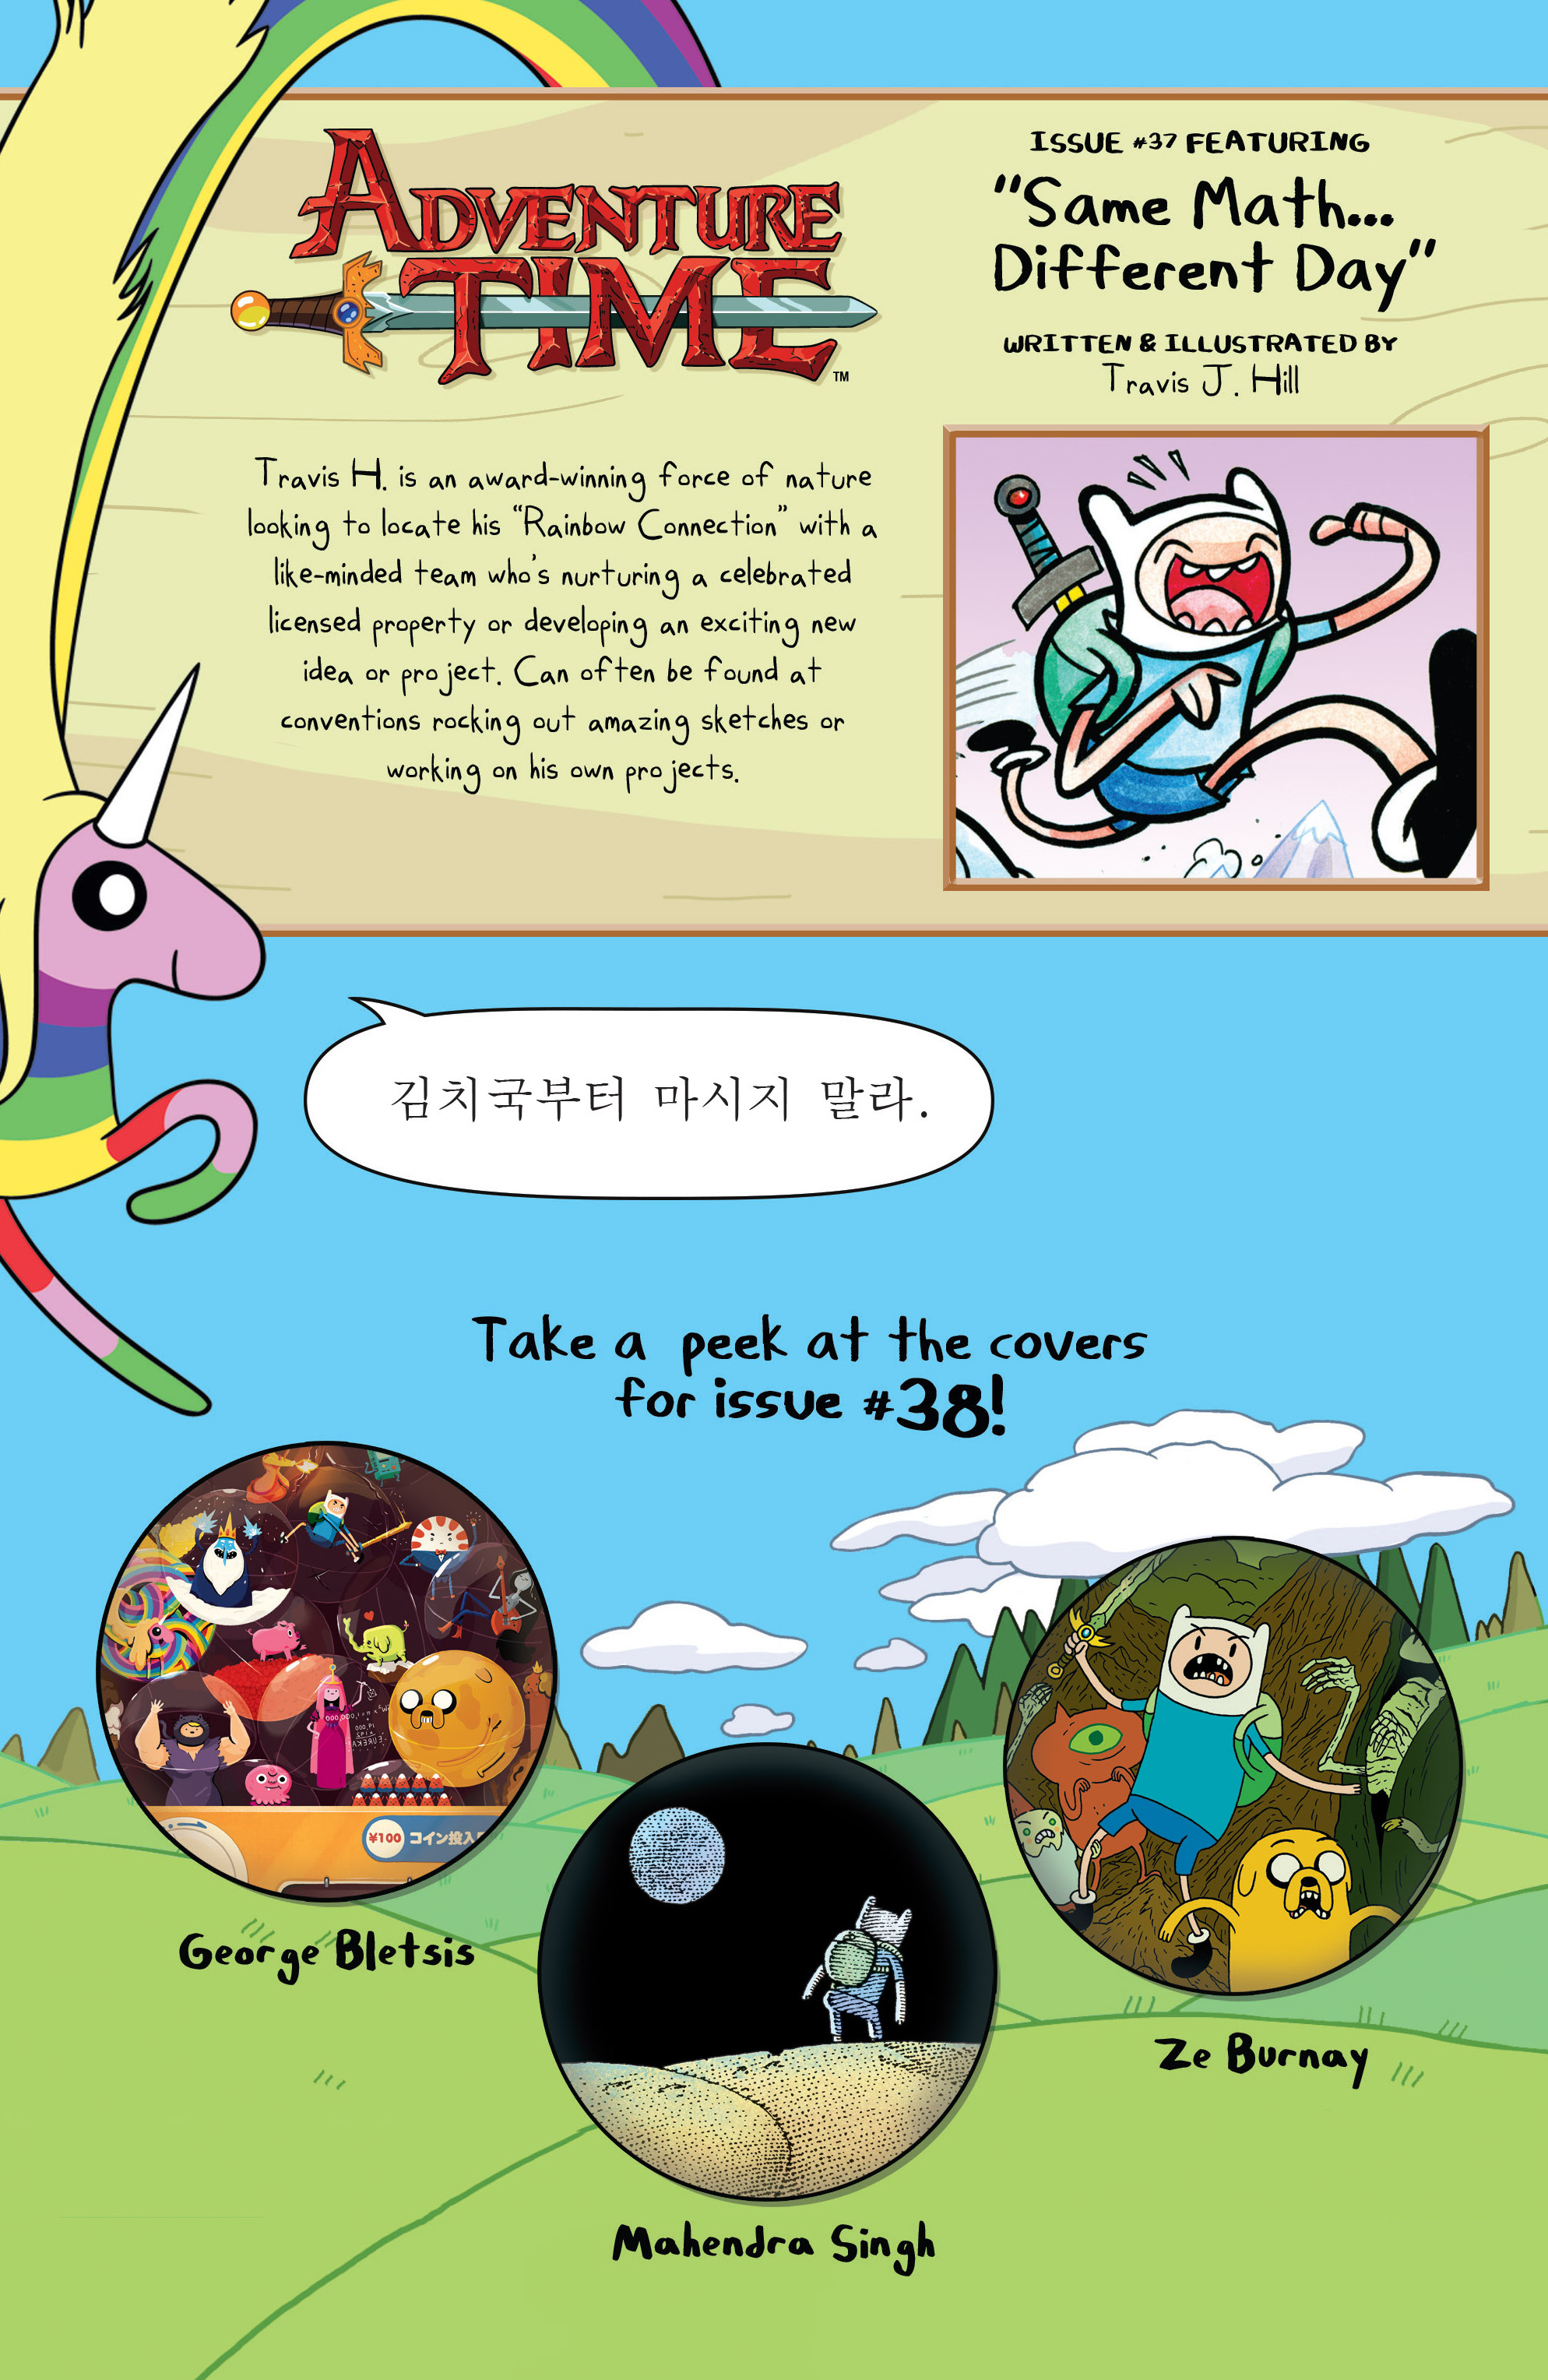 Read online Adventure Time comic -  Issue #37 - 25